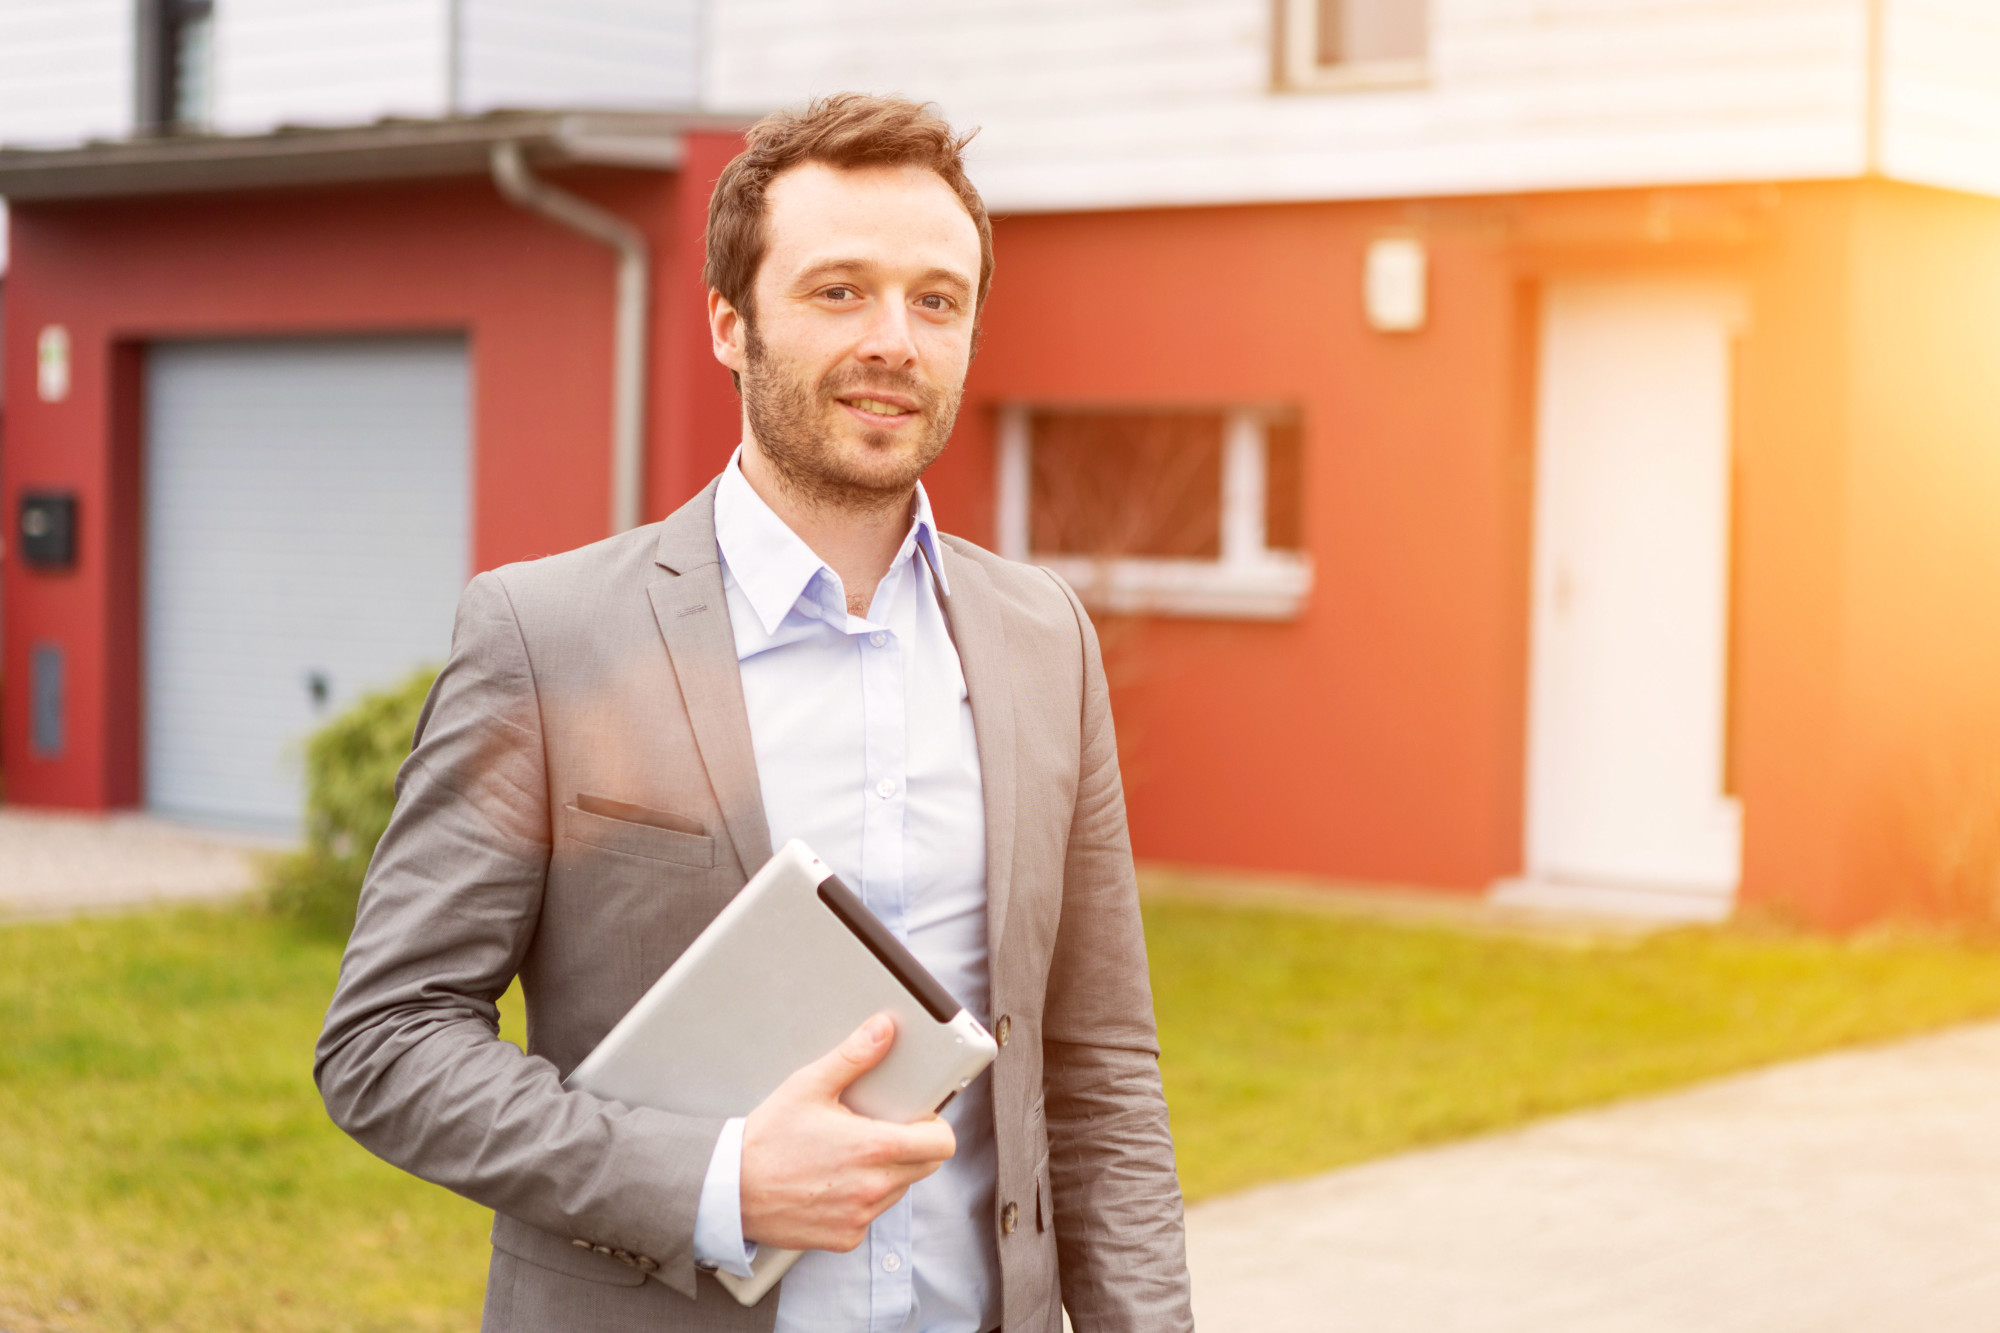 Being a landlord has its advantages as well as its challenges. Our informative guide here has five effective tips for landlords to remember.